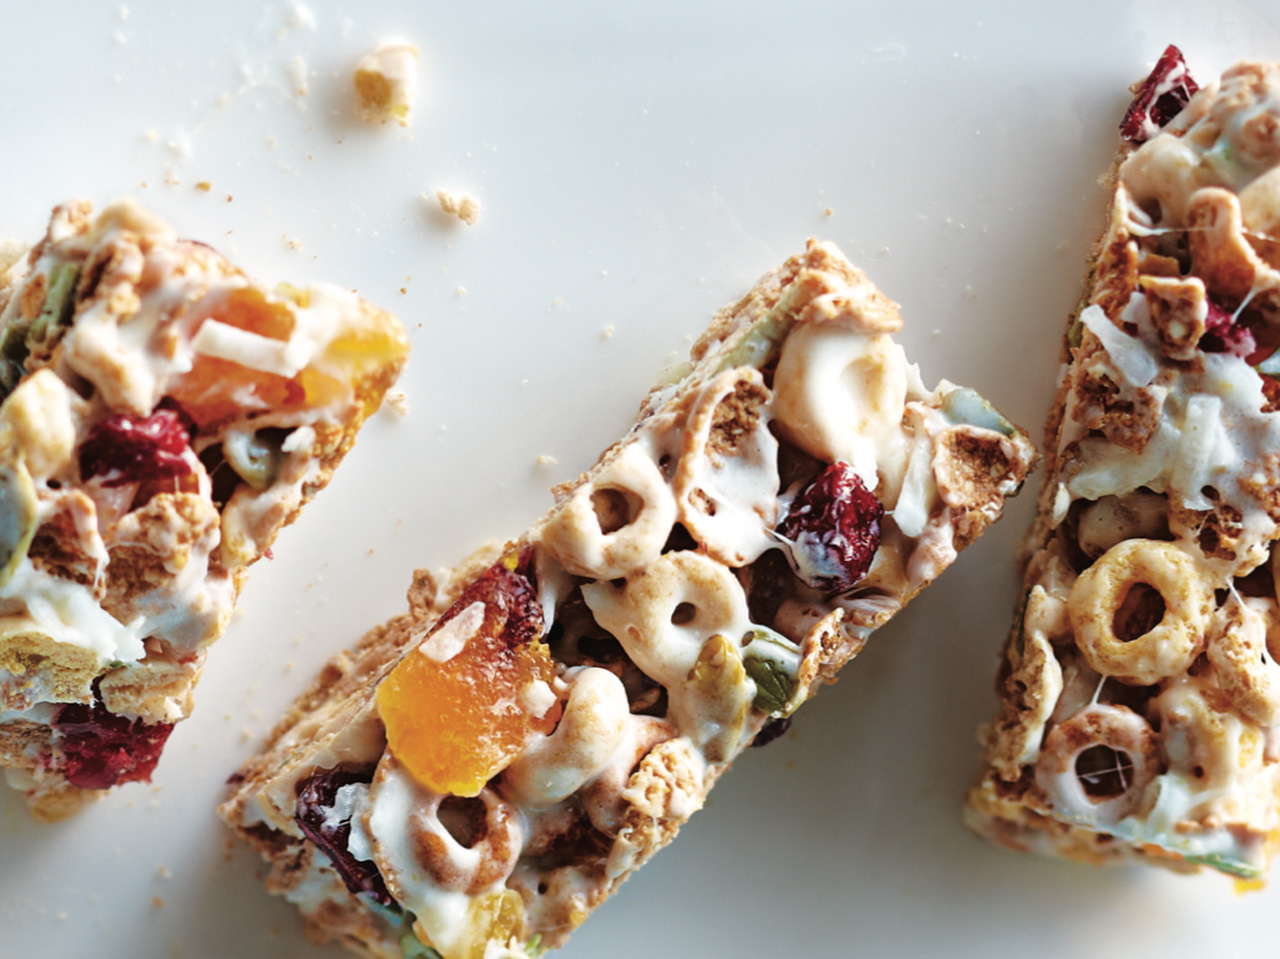 Fruit and Cereal Snack Bars